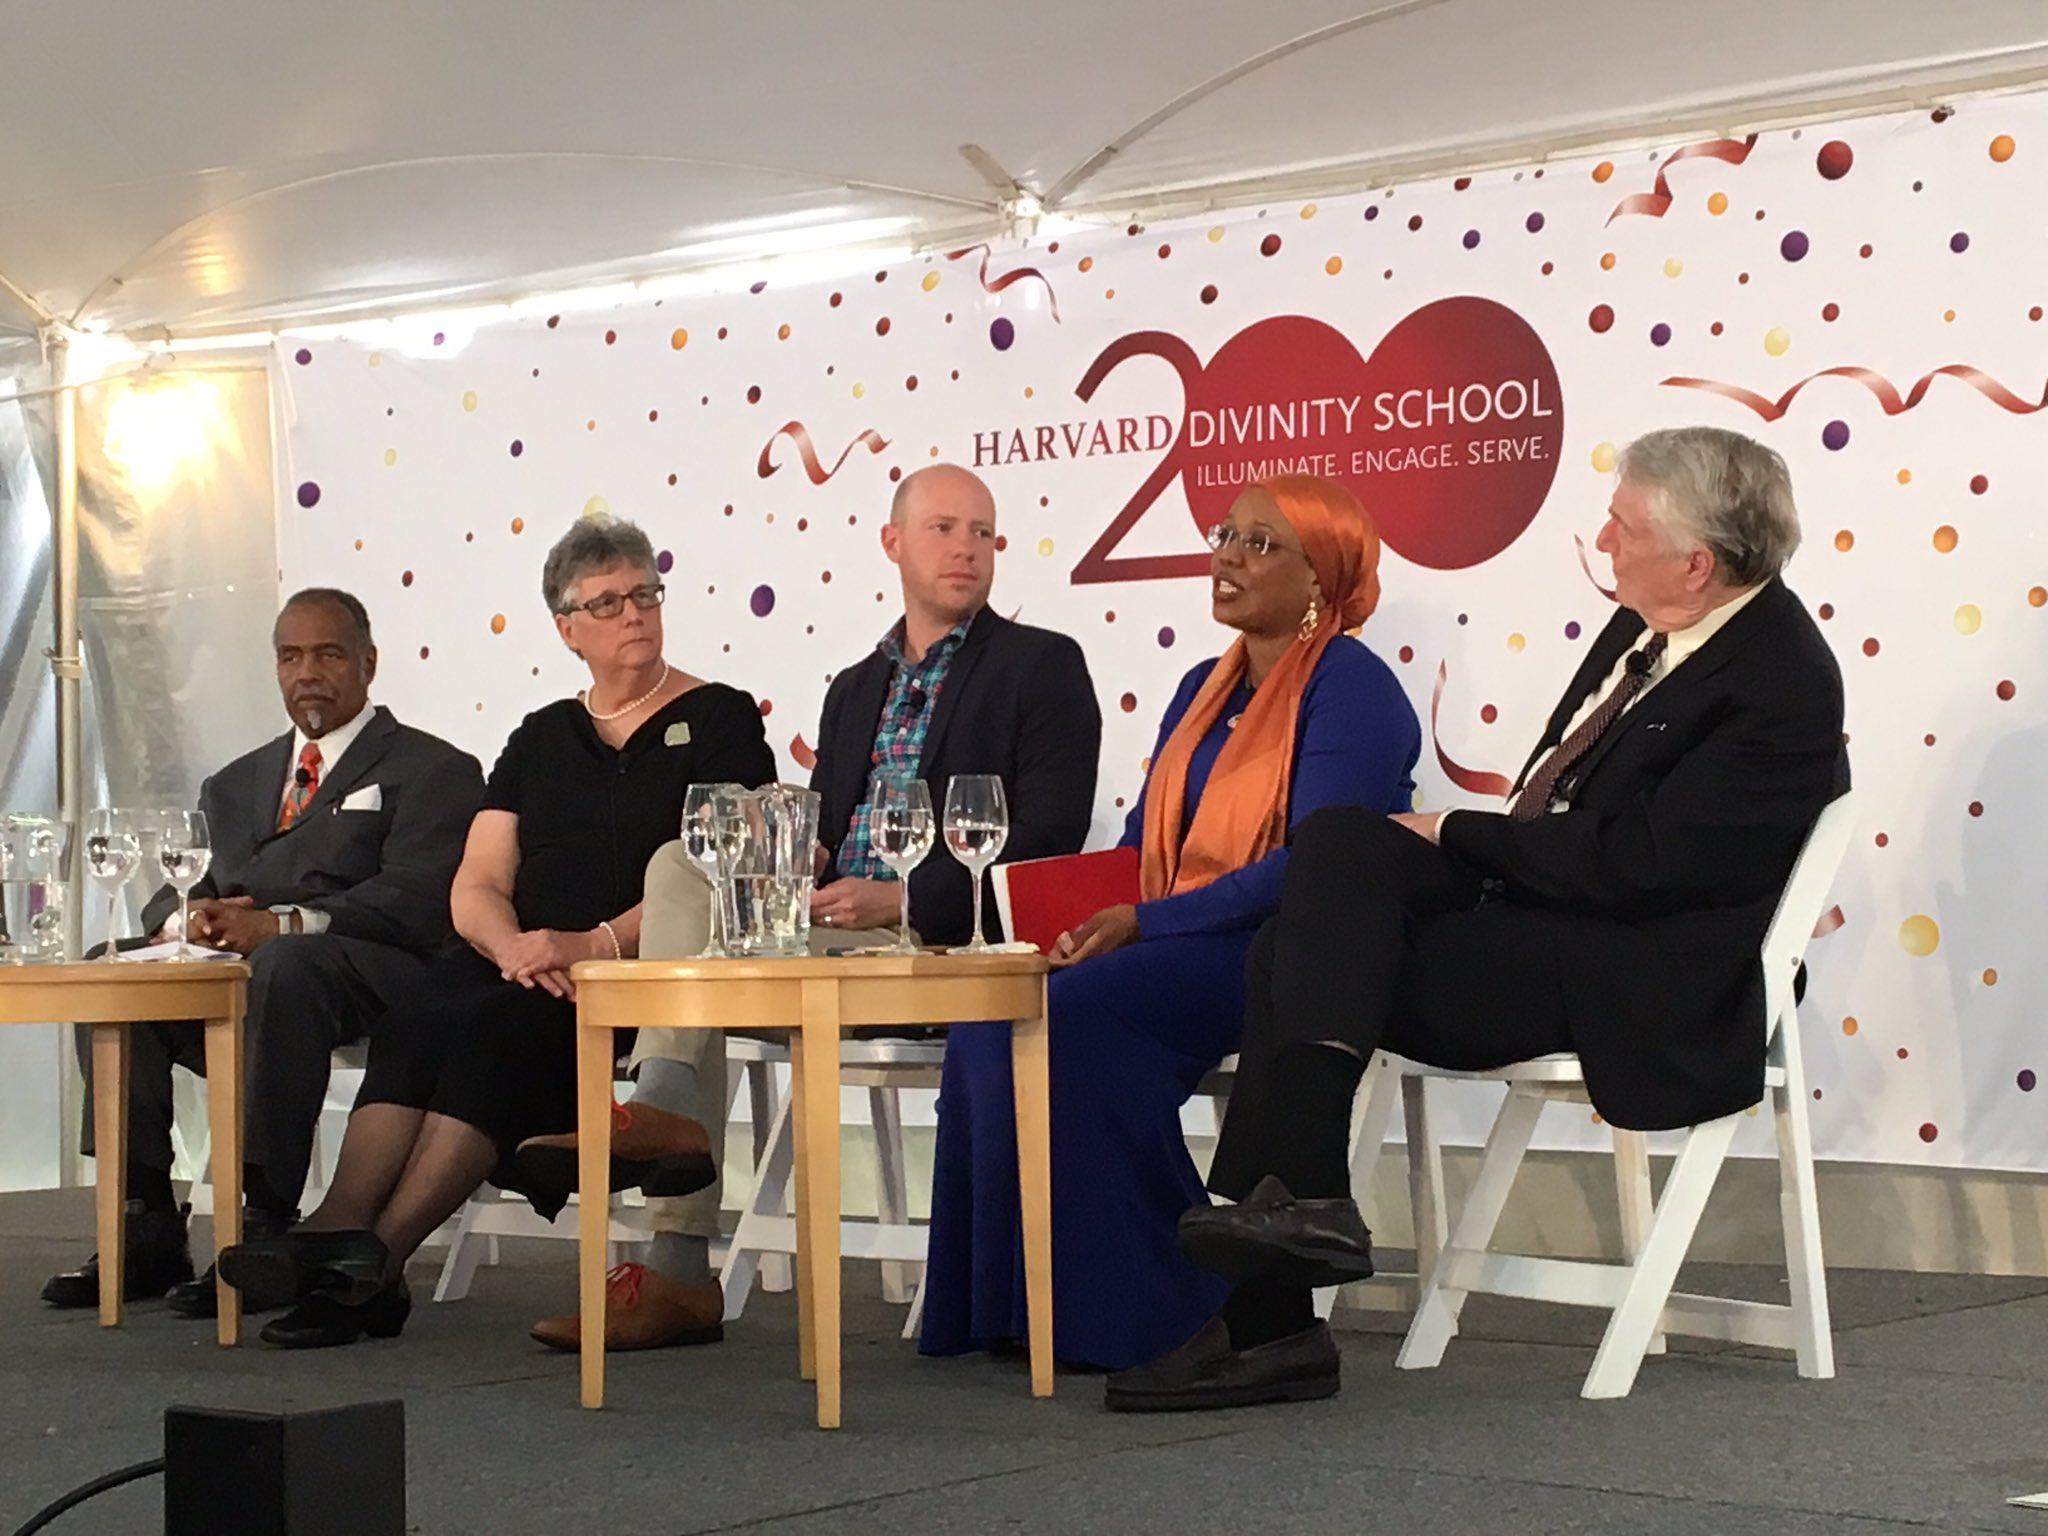 2017 Gomes Honorees - @HarvardDivinity alumni who helped shape this school, & the world, for the better - engage in discussion at #HDS200. https://t.co/iUBLobRMdP